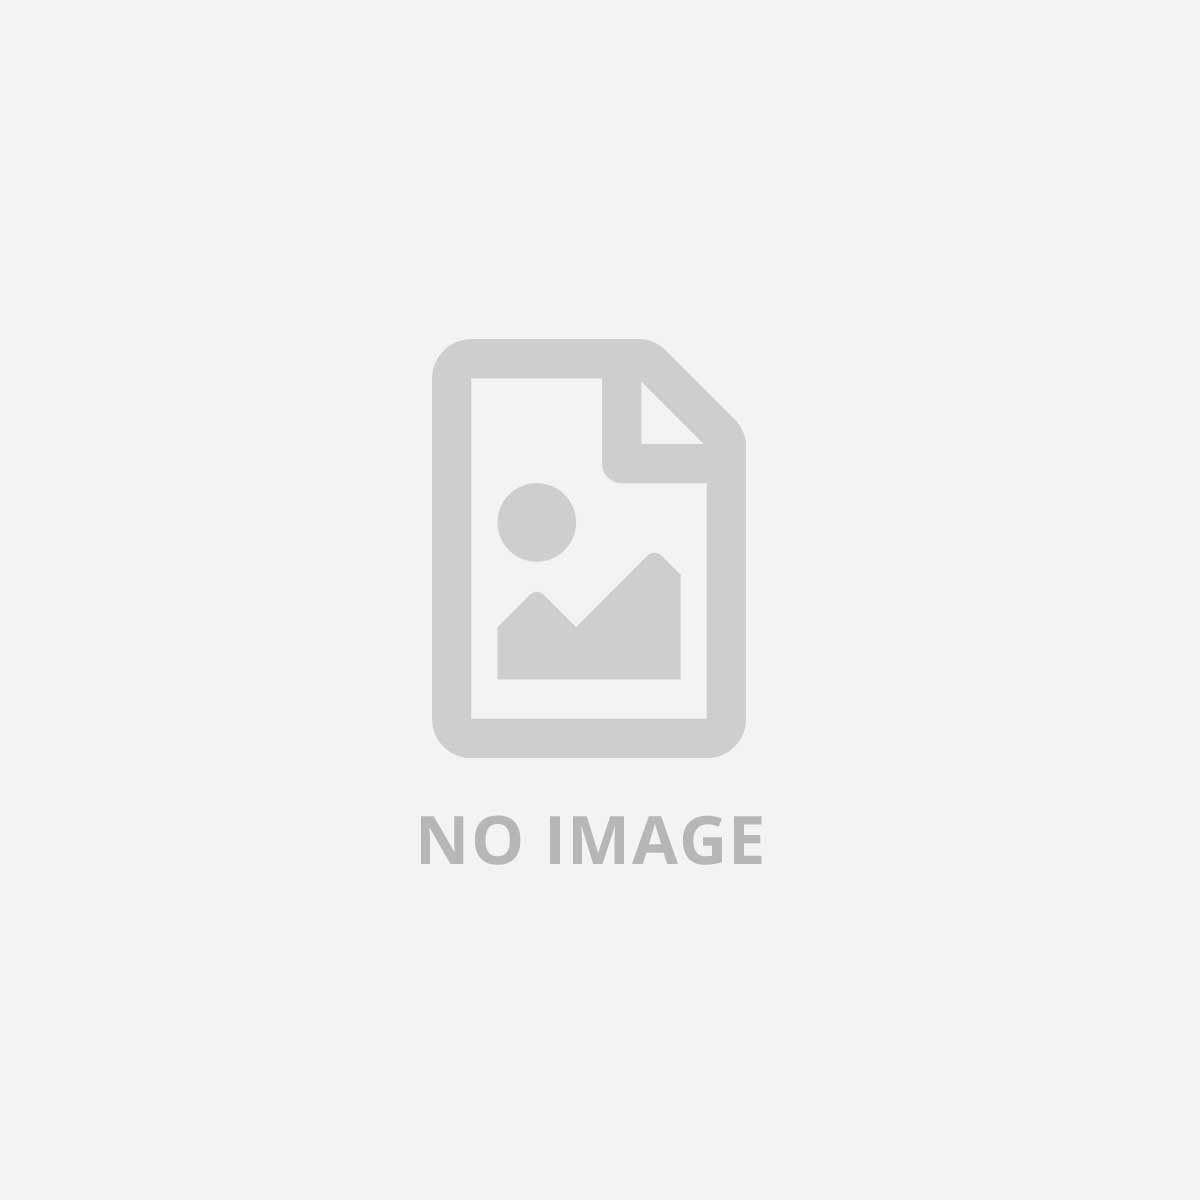 XYZ PRINTING 3D PEN 1.0 EDUCATION PACKAGE